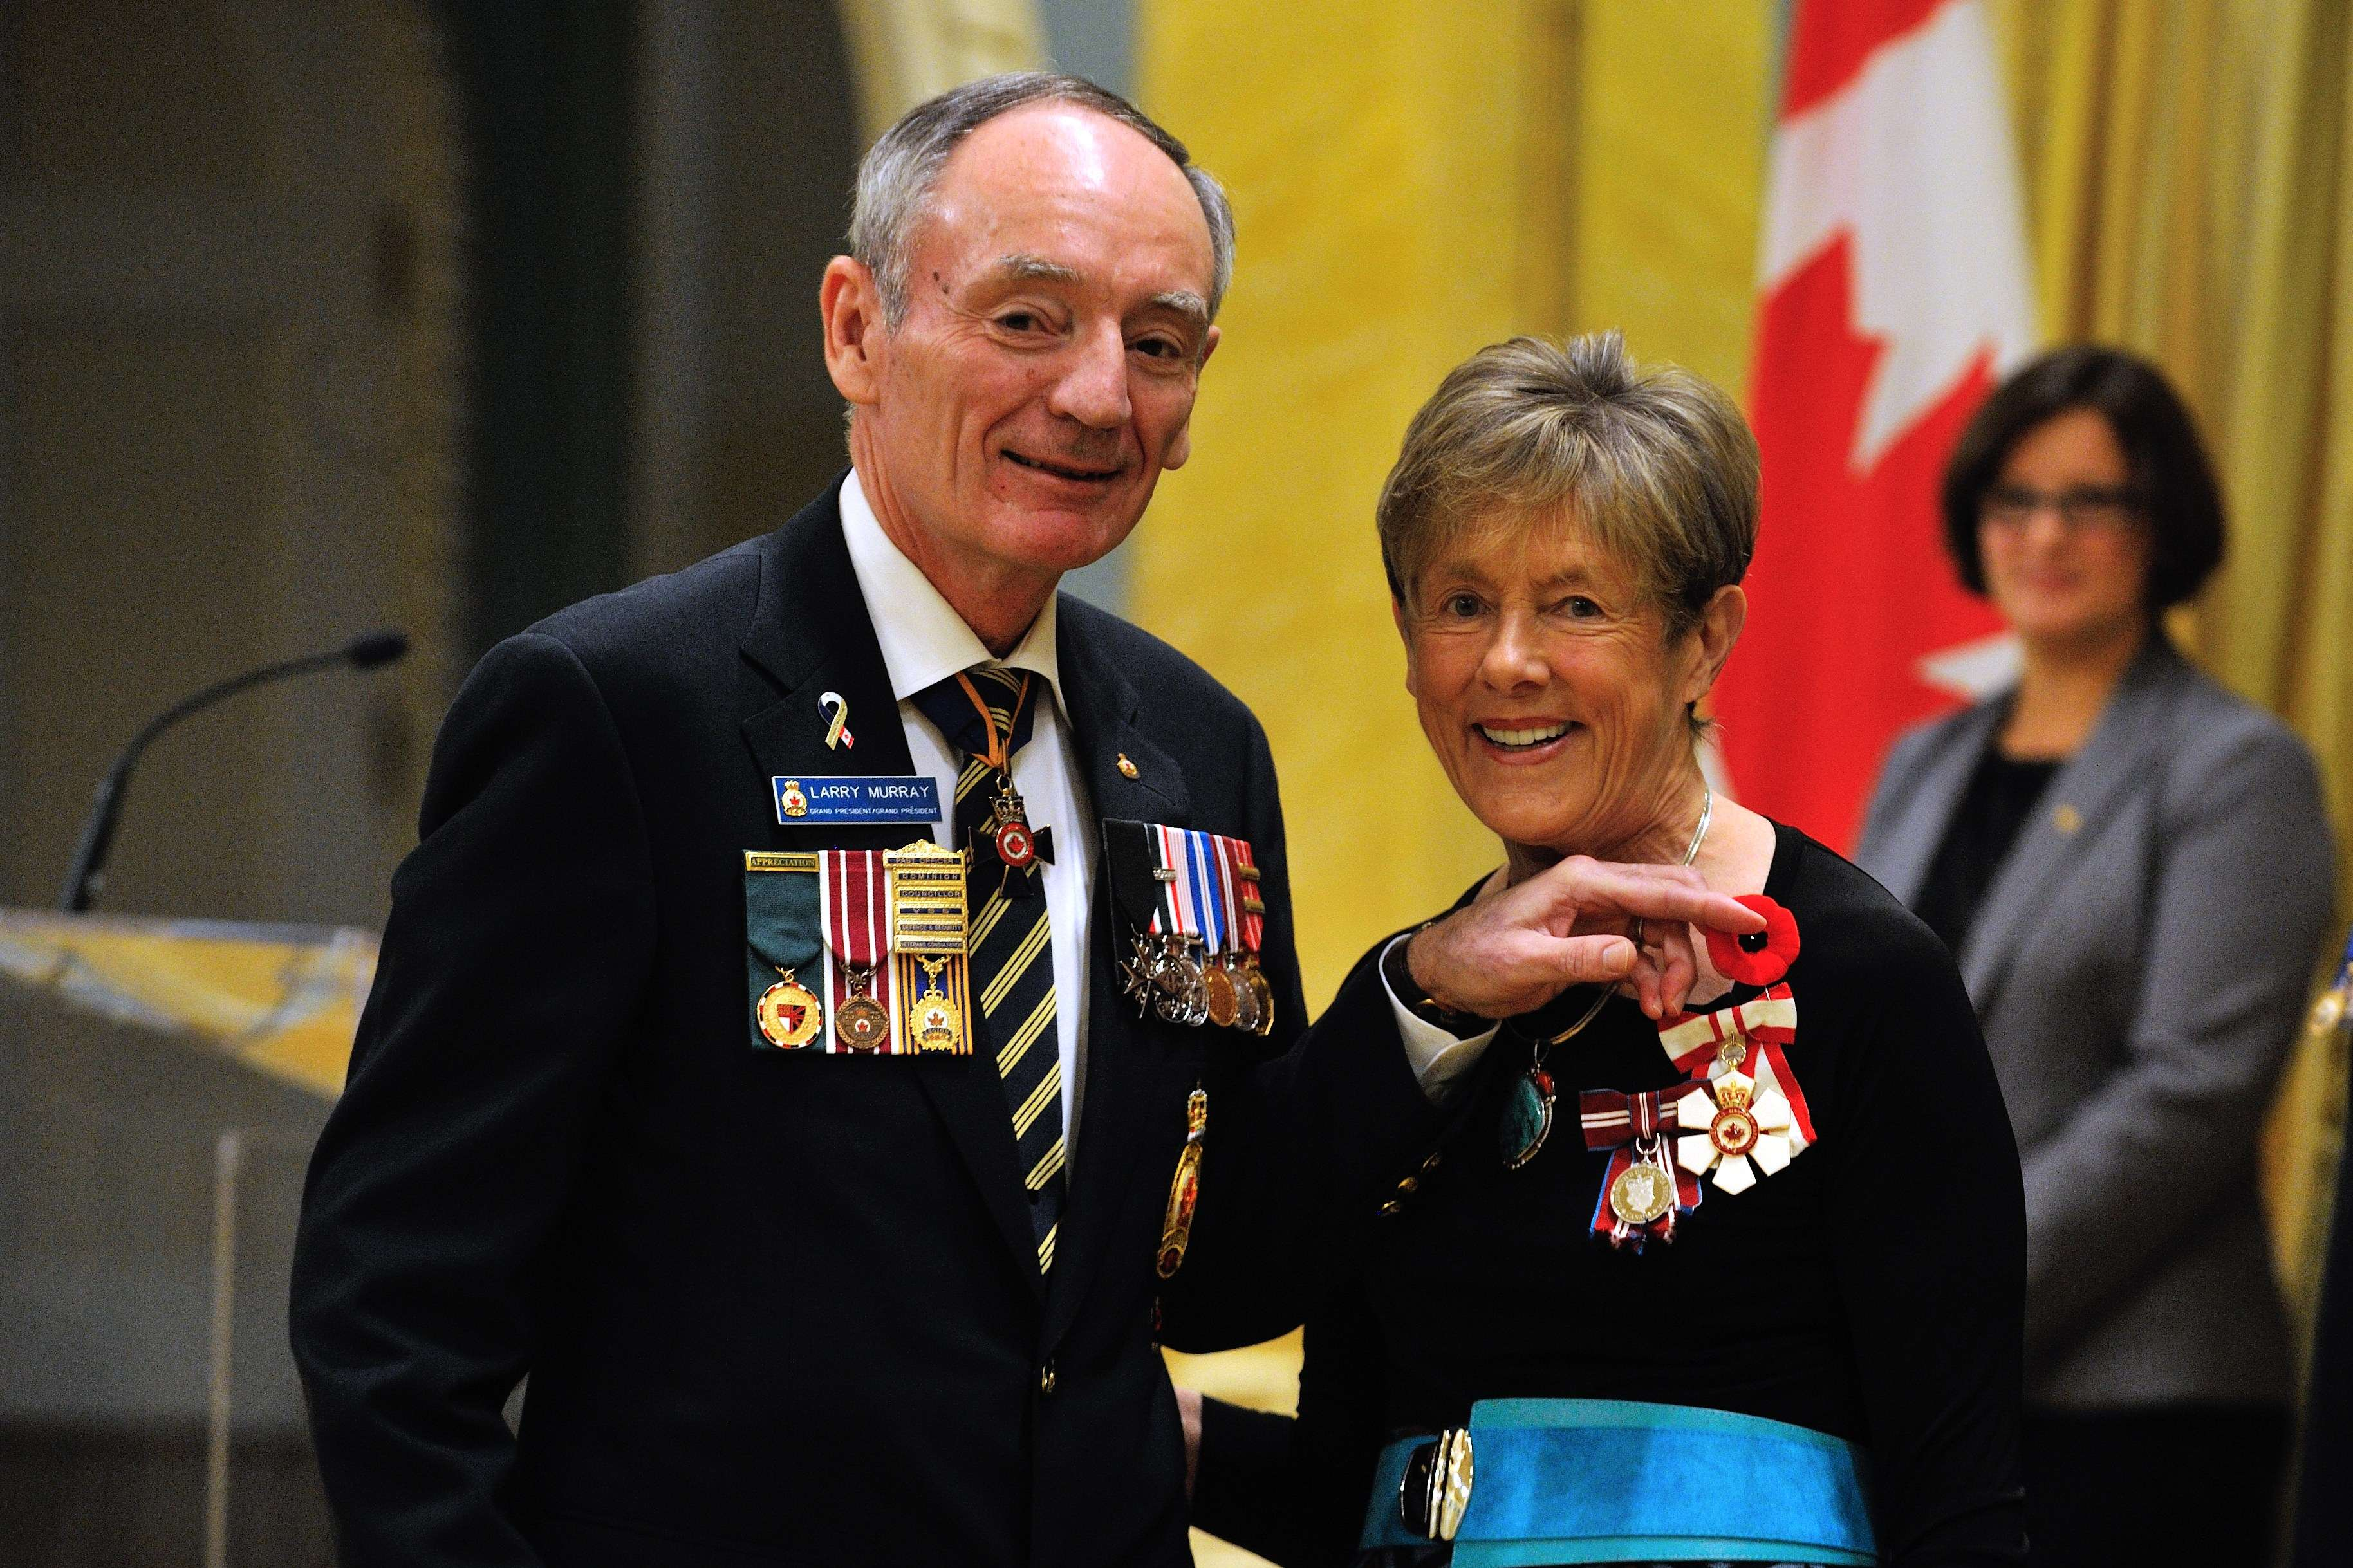 Her Excellency Sharon Johnston received a poppy from Mr. Murray.